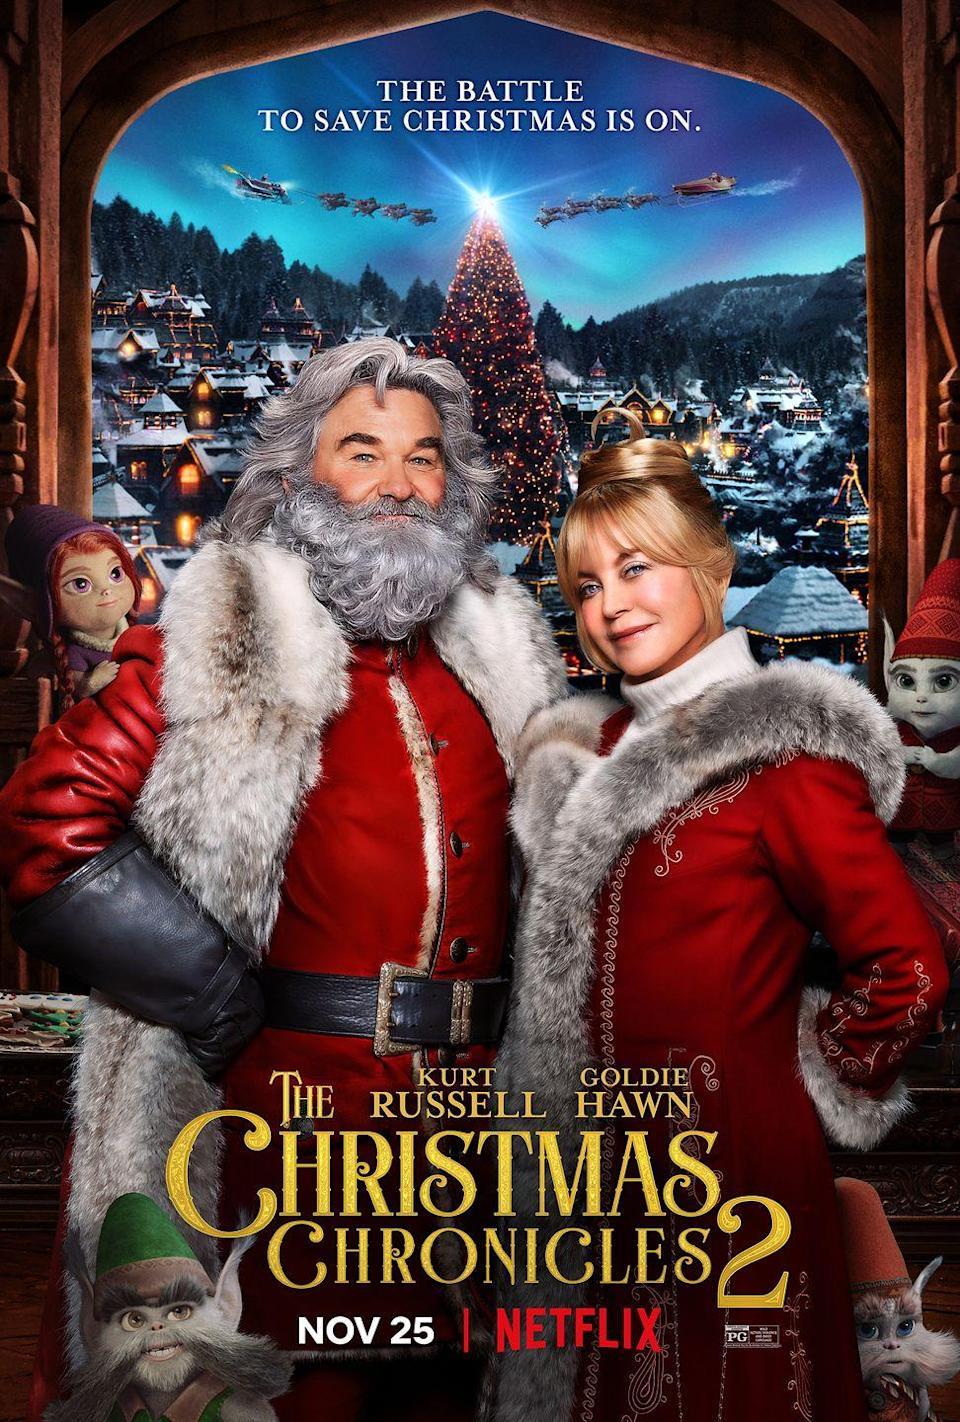 """<p>Kurt Russell and Goldie Hawn star as Santa and Mrs. Claus in this feel-good comedy. The story follows a teenager named Kate, who runs away and finds herself at the North Pole where a bad elf is meddling to ruin Christmas. </p><p><a class=""""link rapid-noclick-resp"""" href=""""https://www.netflix.com/title/80988988"""" rel=""""nofollow noopener"""" target=""""_blank"""" data-ylk=""""slk:STREAM NOW"""">STREAM NOW</a></p>"""